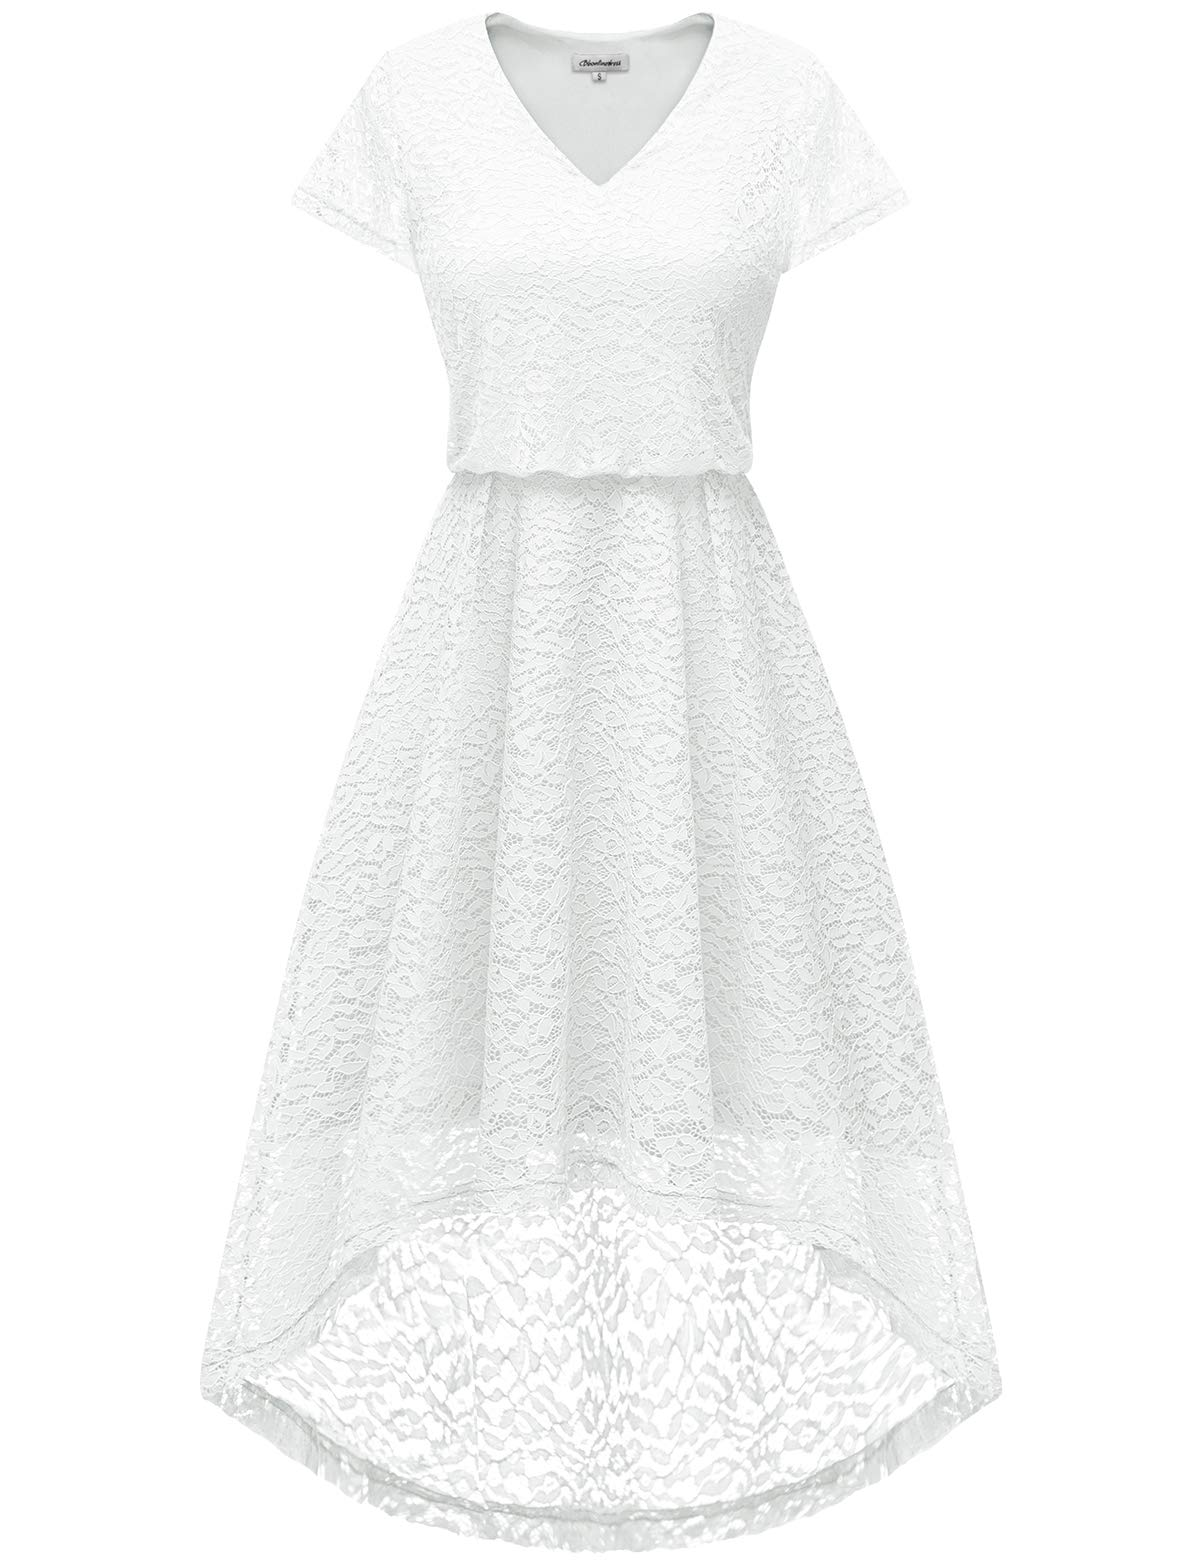 Bbonlinedress Women's V-Neck Floral Lace Hi-Lo Flare Sleeve Cocktail Swing Party Dress White L